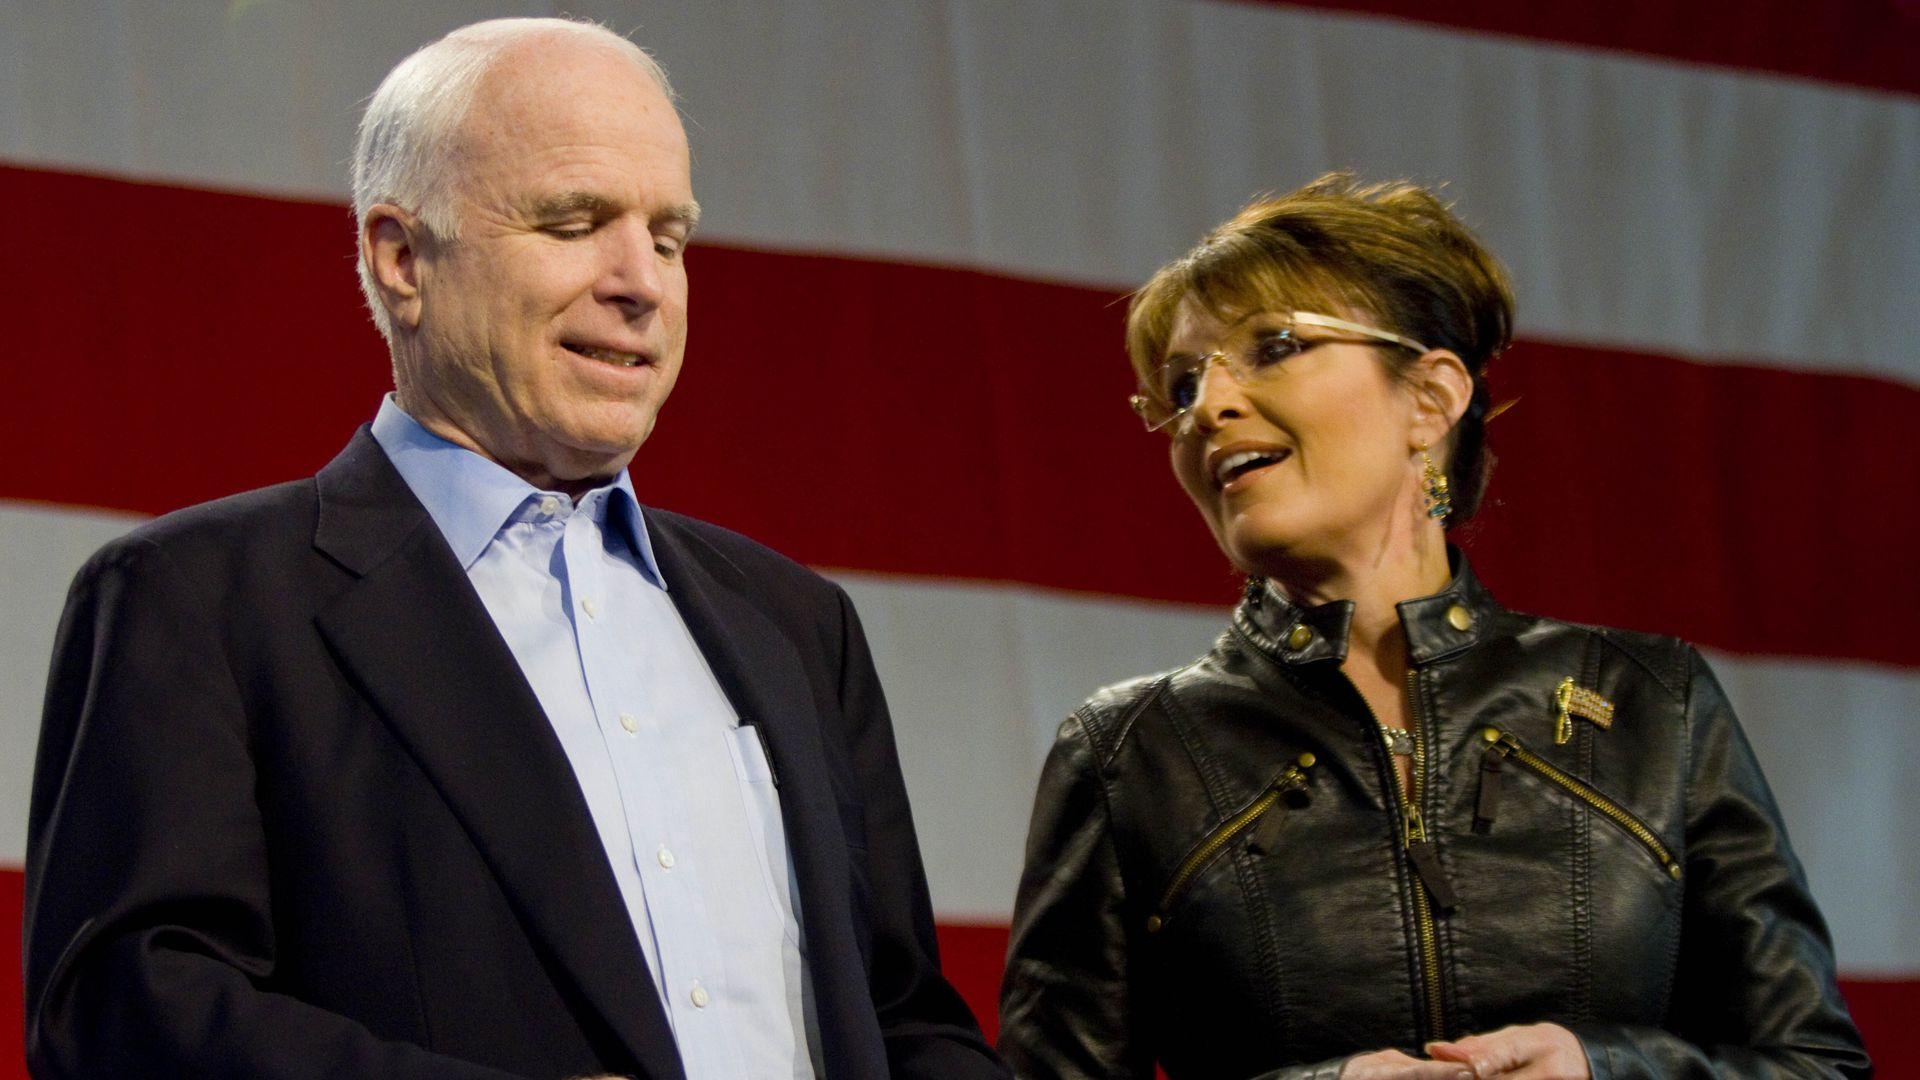 Sen. John McCain (R-AZ) and former Alaska Gov. Sarah Palin at a campaign rally in Tucson, Arizona. Photo by Darren Hauck/Getty Images